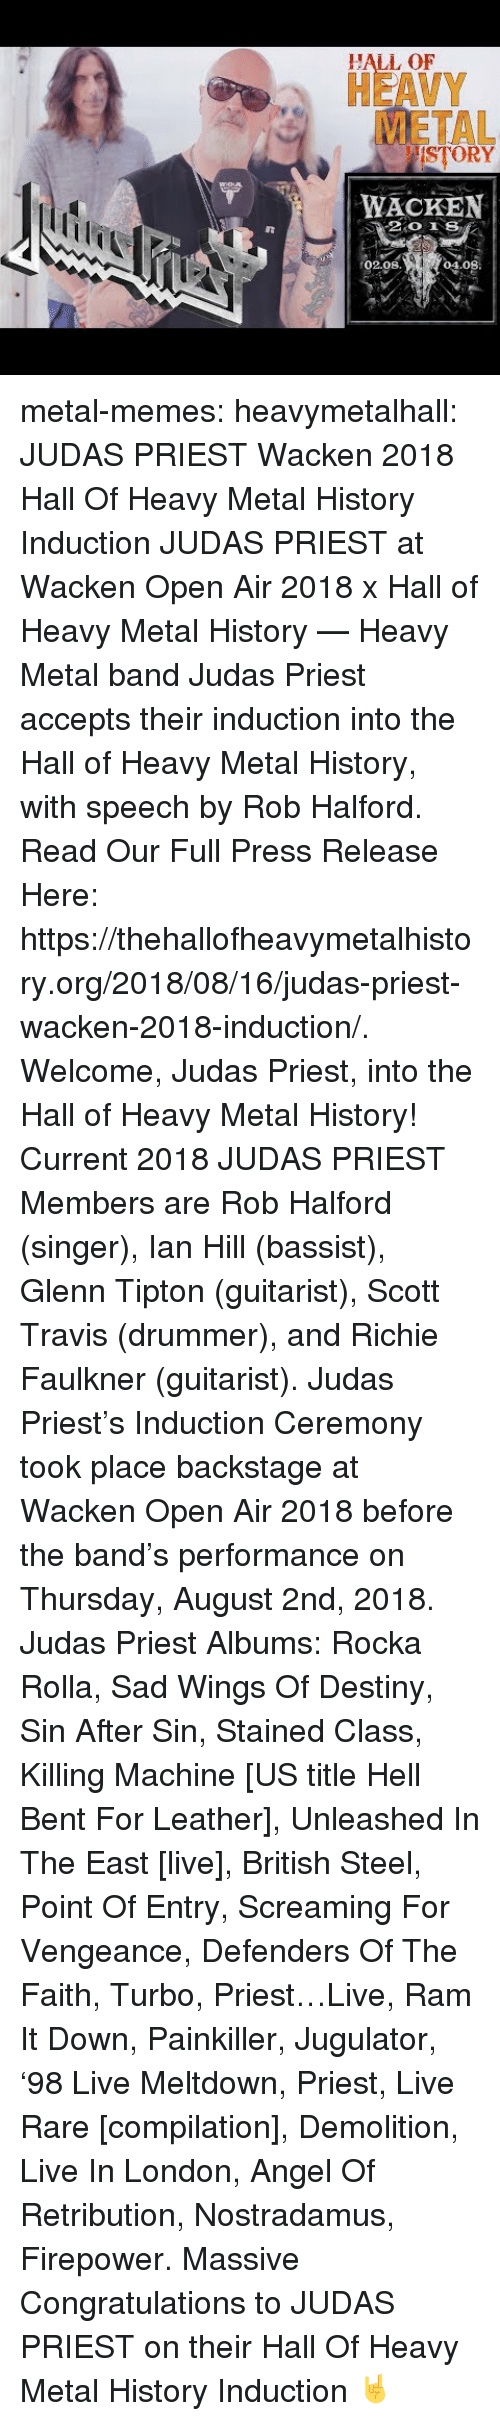 Stained: HALL OF  HEAVY  METAL  ISTORY  WACKEN  02.08  04.08 metal-memes:  heavymetalhall:  JUDAS PRIEST Wacken 2018 Hall Of Heavy Metal History Induction JUDAS PRIEST at Wacken Open Air 2018 x Hall of Heavy Metal History — Heavy Metal band Judas Priest accepts their induction into the Hall of Heavy Metal History, with speech by Rob Halford.   Read Our Full Press Release Here: https://thehallofheavymetalhistory.org/2018/08/16/judas-priest-wacken-2018-induction/.   Welcome, Judas Priest, into the Hall of Heavy Metal History!   Current 2018 JUDAS PRIEST Members are Rob Halford (singer), Ian Hill (bassist), Glenn Tipton (guitarist), Scott Travis (drummer), and Richie Faulkner (guitarist).  Judas Priest's Induction Ceremony took place backstage at Wacken Open Air 2018 before the band's performance on Thursday, August 2nd, 2018.   Judas Priest Albums: Rocka Rolla, Sad Wings Of Destiny, Sin After Sin, Stained Class, Killing Machine [US title Hell Bent For Leather], Unleashed In The East [live], British Steel, Point Of Entry, Screaming For Vengeance, Defenders Of The Faith, Turbo, Priest…Live, Ram It Down, Painkiller, Jugulator, '98 Live Meltdown, Priest, Live  Rare [compilation], Demolition, Live In London, Angel Of Retribution, Nostradamus, Firepower.  Massive Congratulations to JUDAS PRIEST on their Hall Of Heavy Metal History Induction 🤘